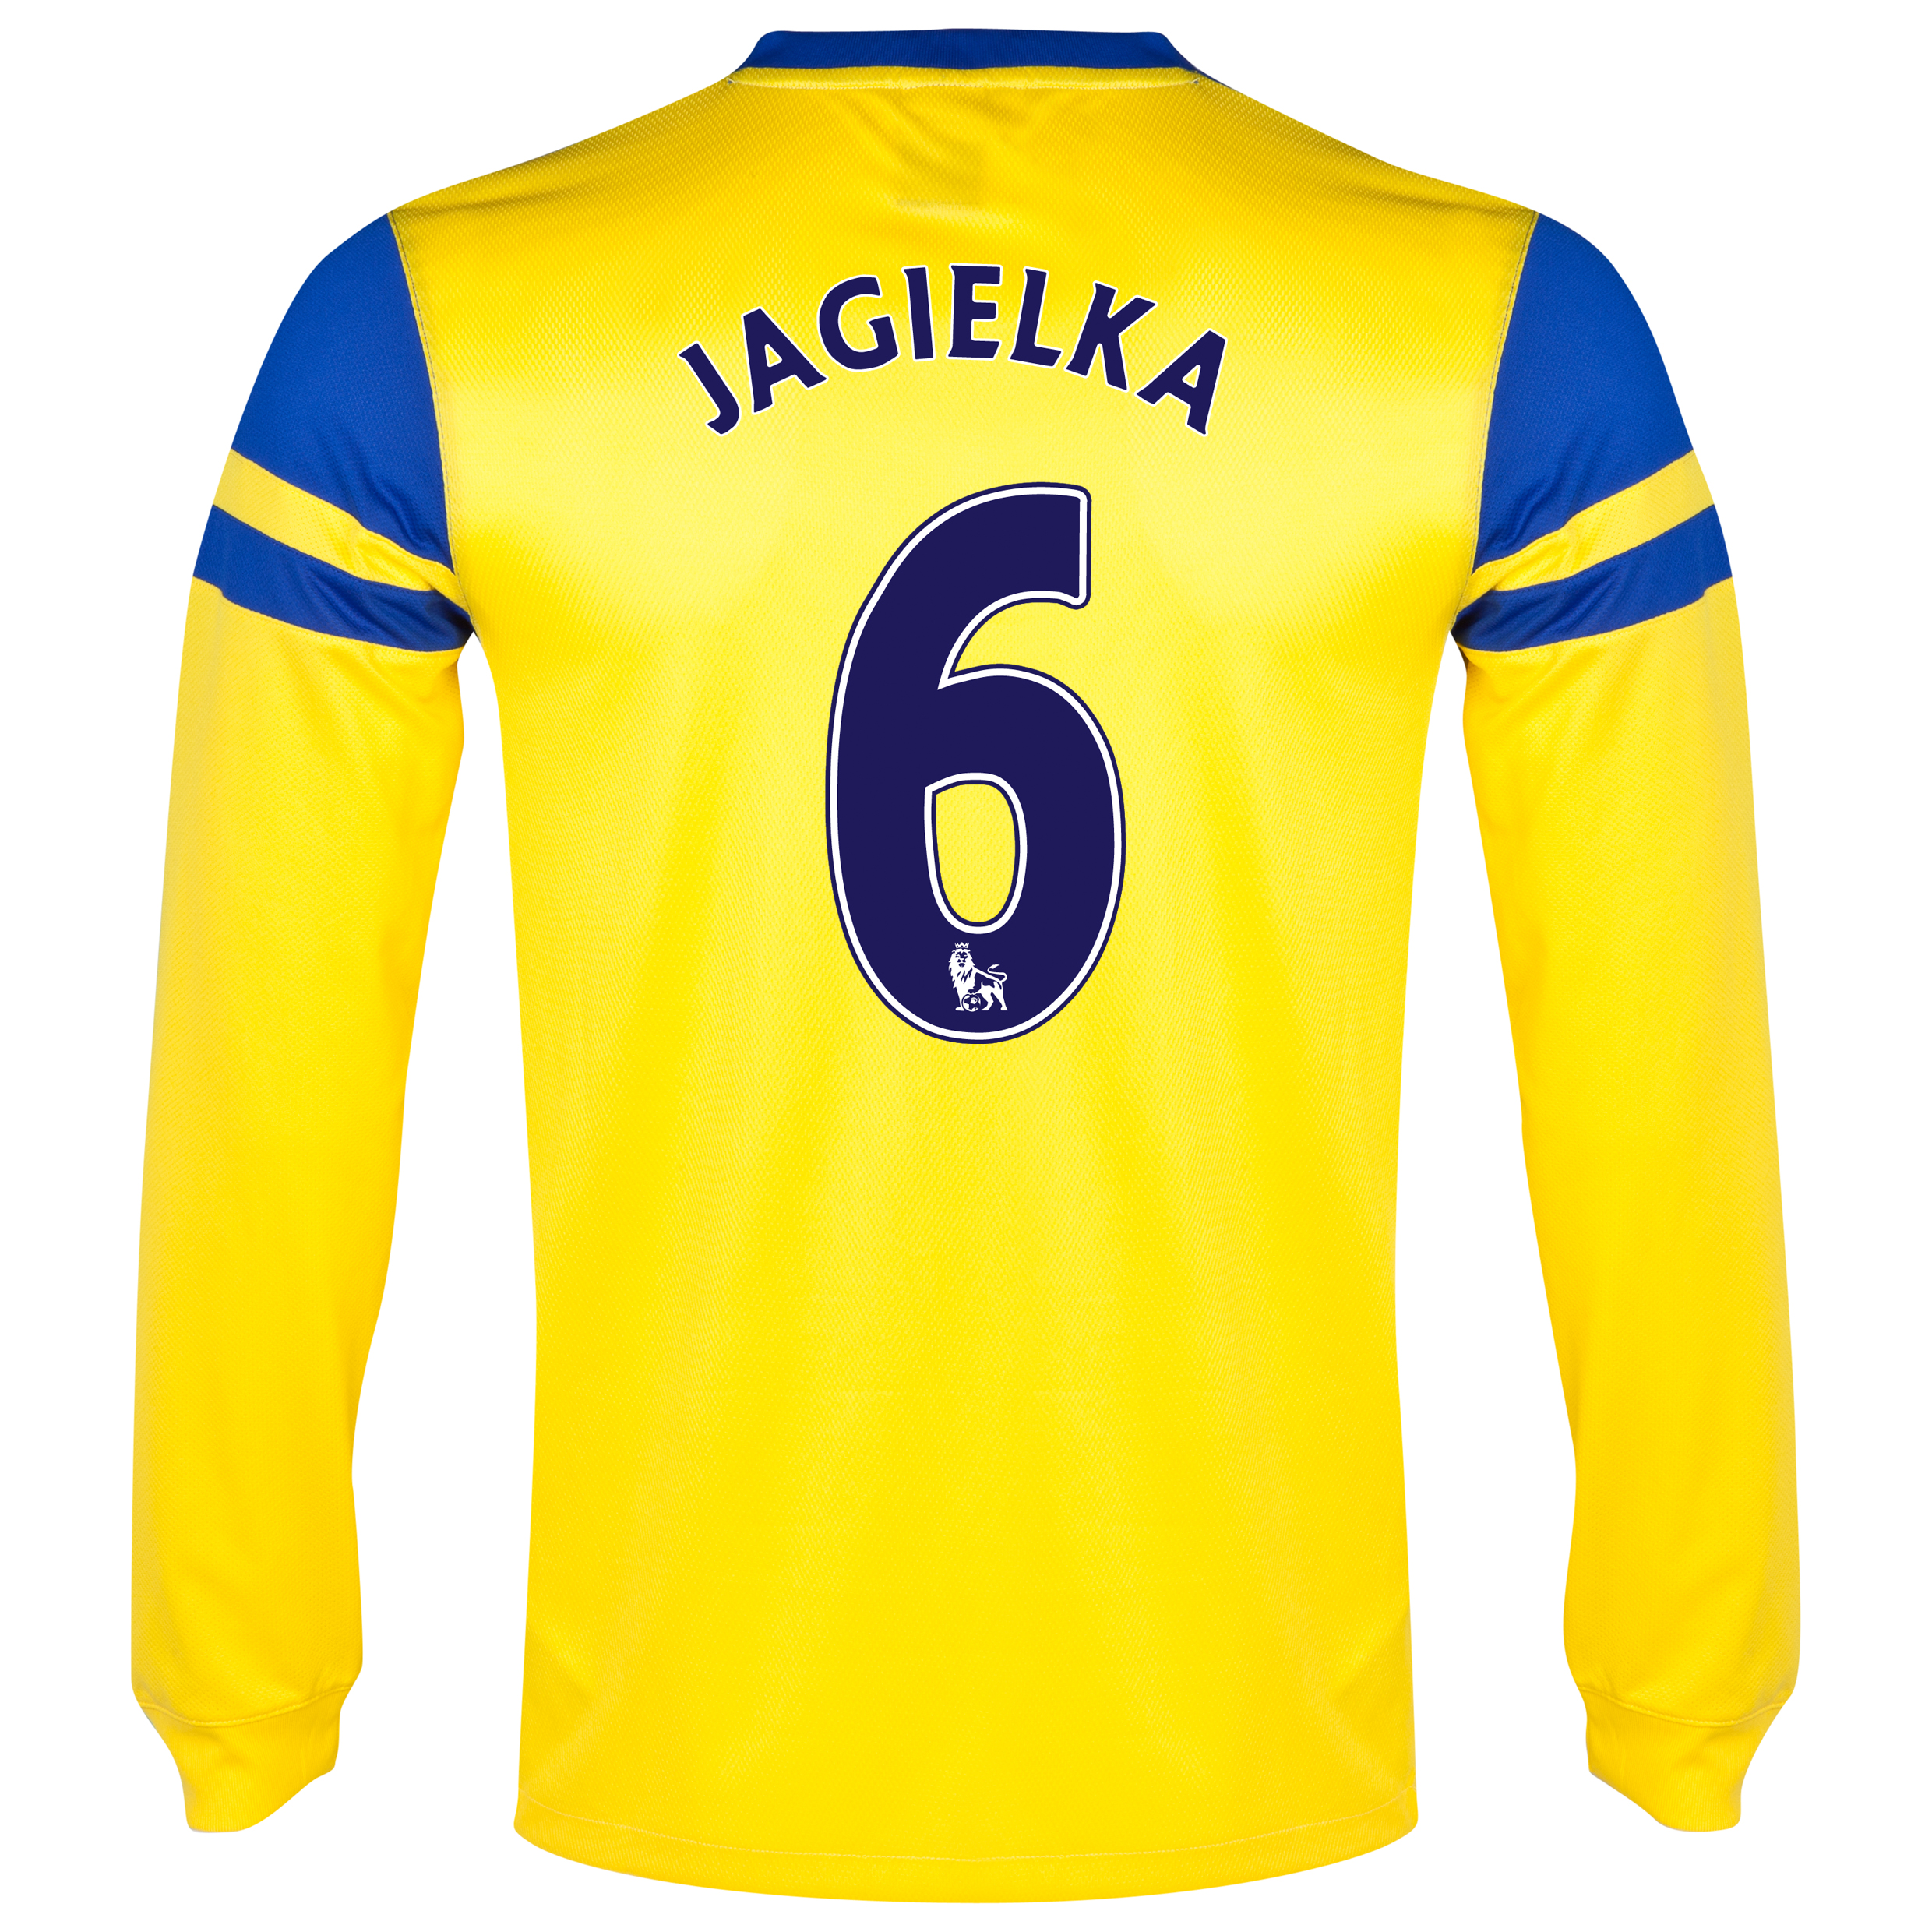 Everton Away Shirt 2013/14 - Long Sleeved Yellow with Jagielka 6 printing